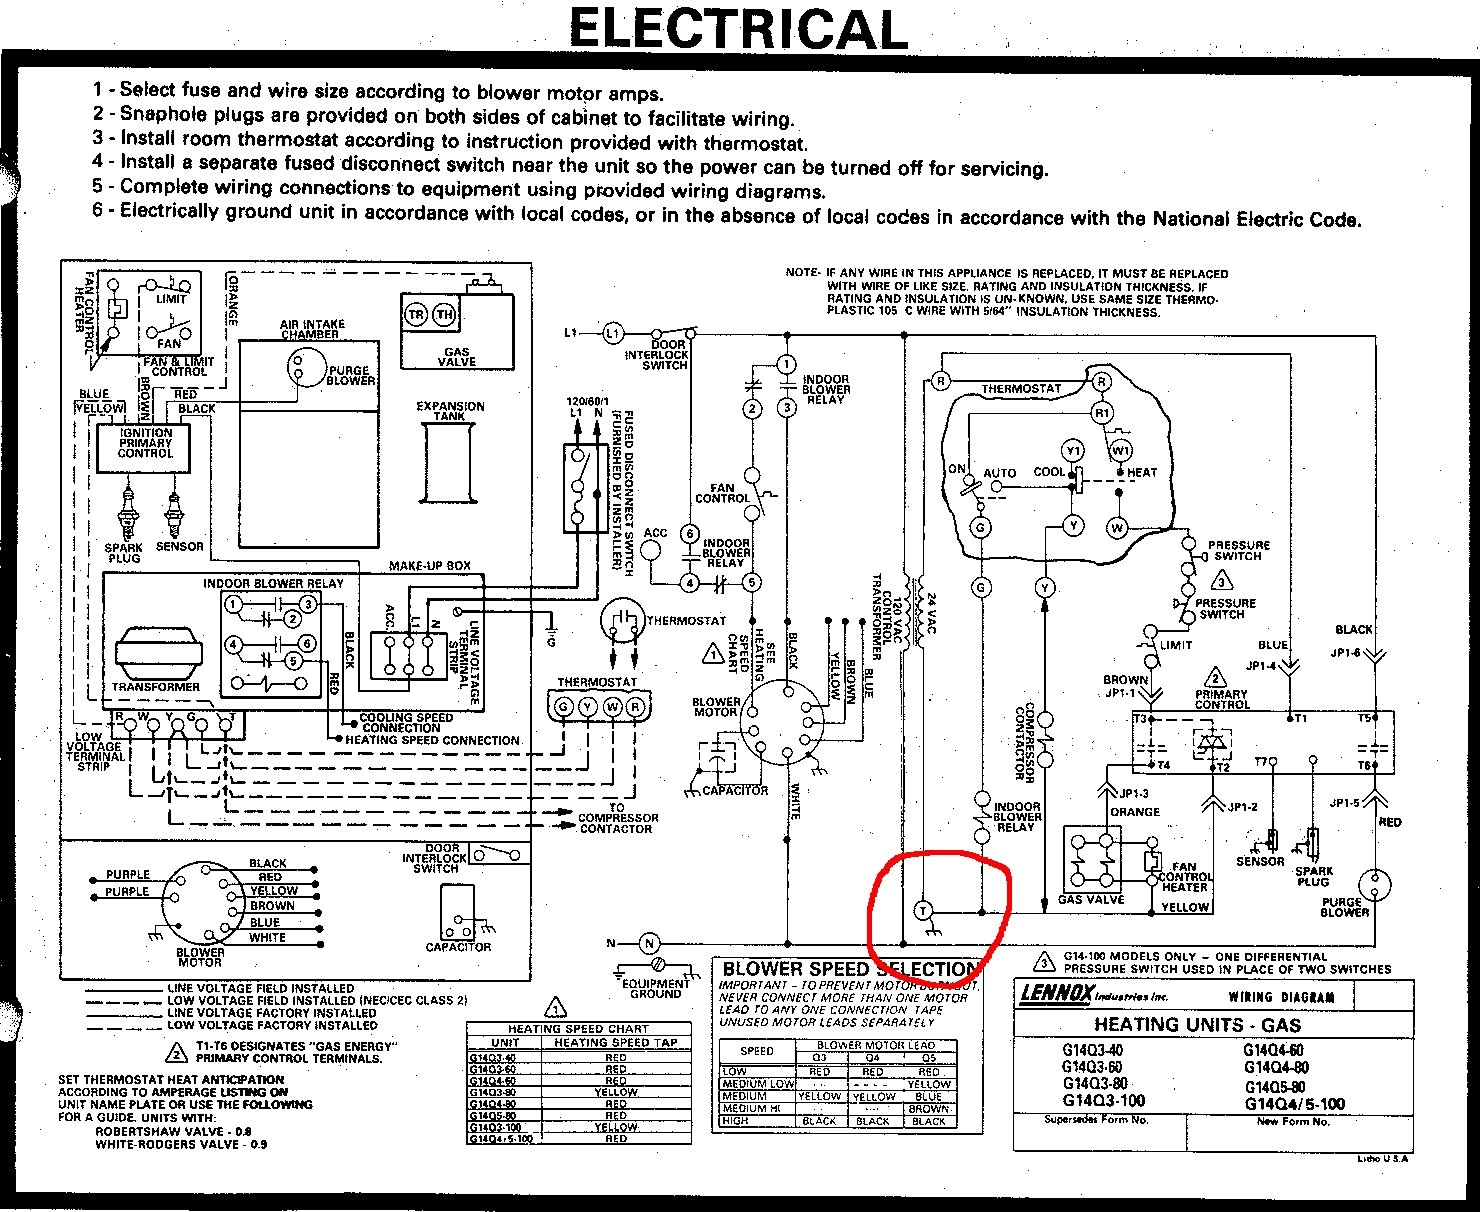 Lennox 51m33 Wiring Diagram - Lennox Furnace thermostat Wiring Diagram Can  I Use the T Terminal